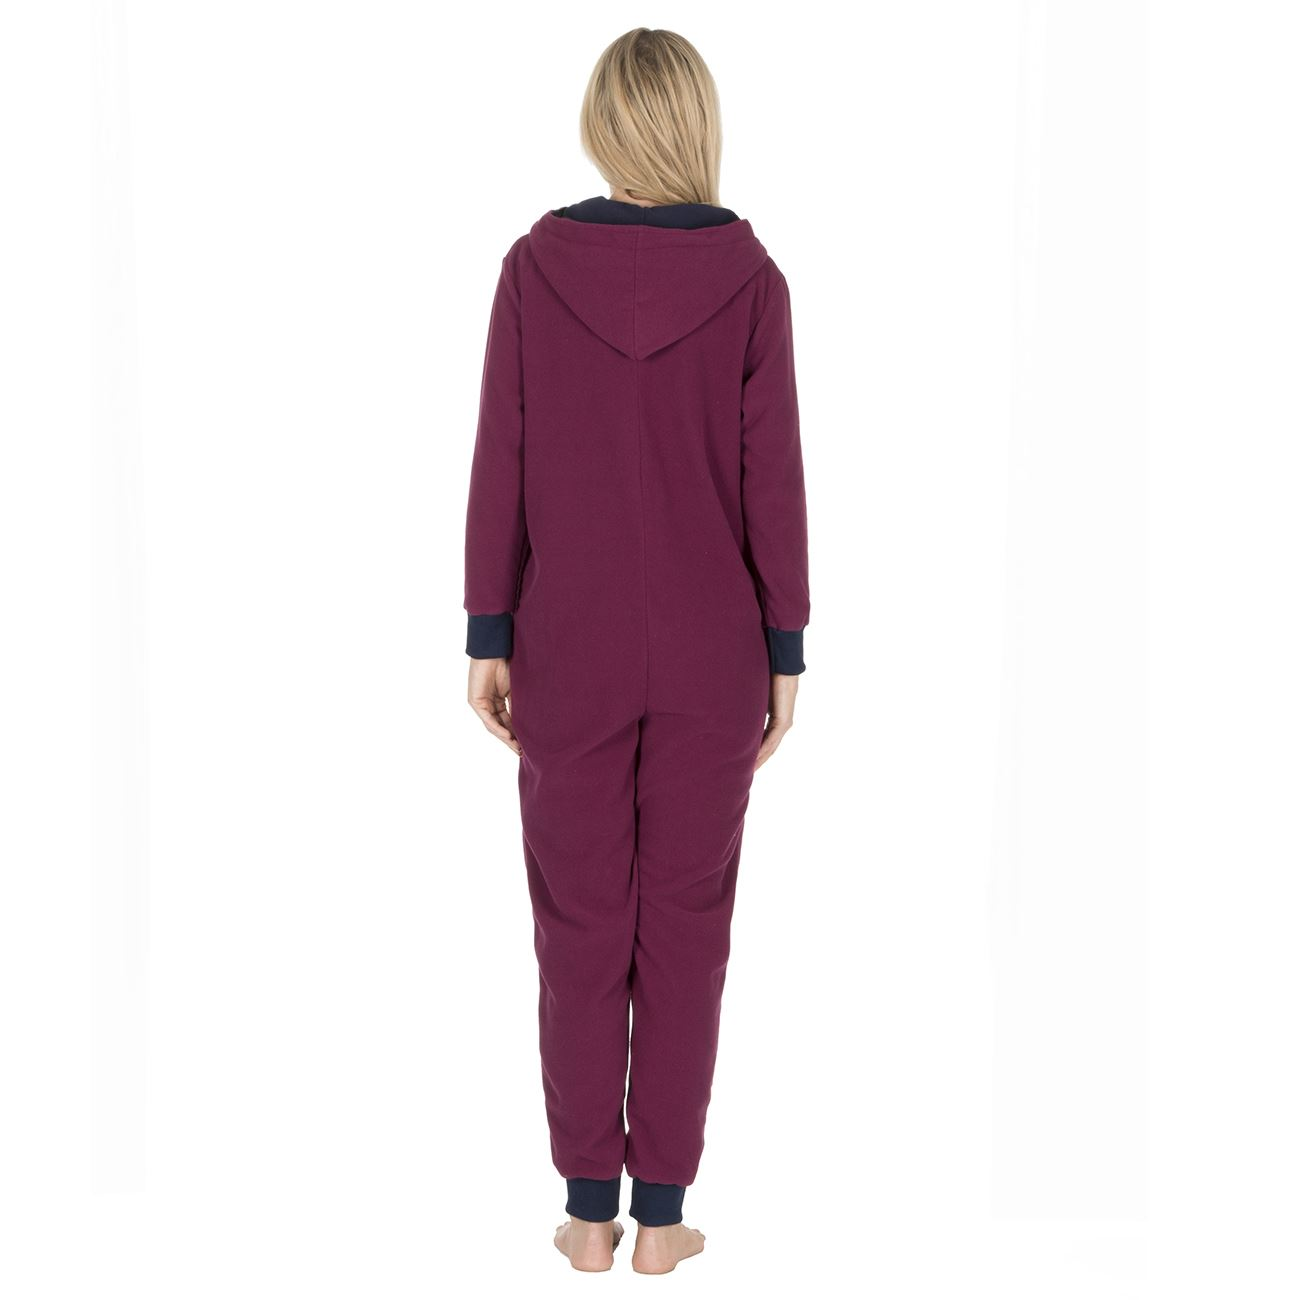 Ladies-Womens-Girls-Fleece-All-In-One-Pyjamas-Outfit-Jumpsuit-Costume-Size-6-18 thumbnail 40